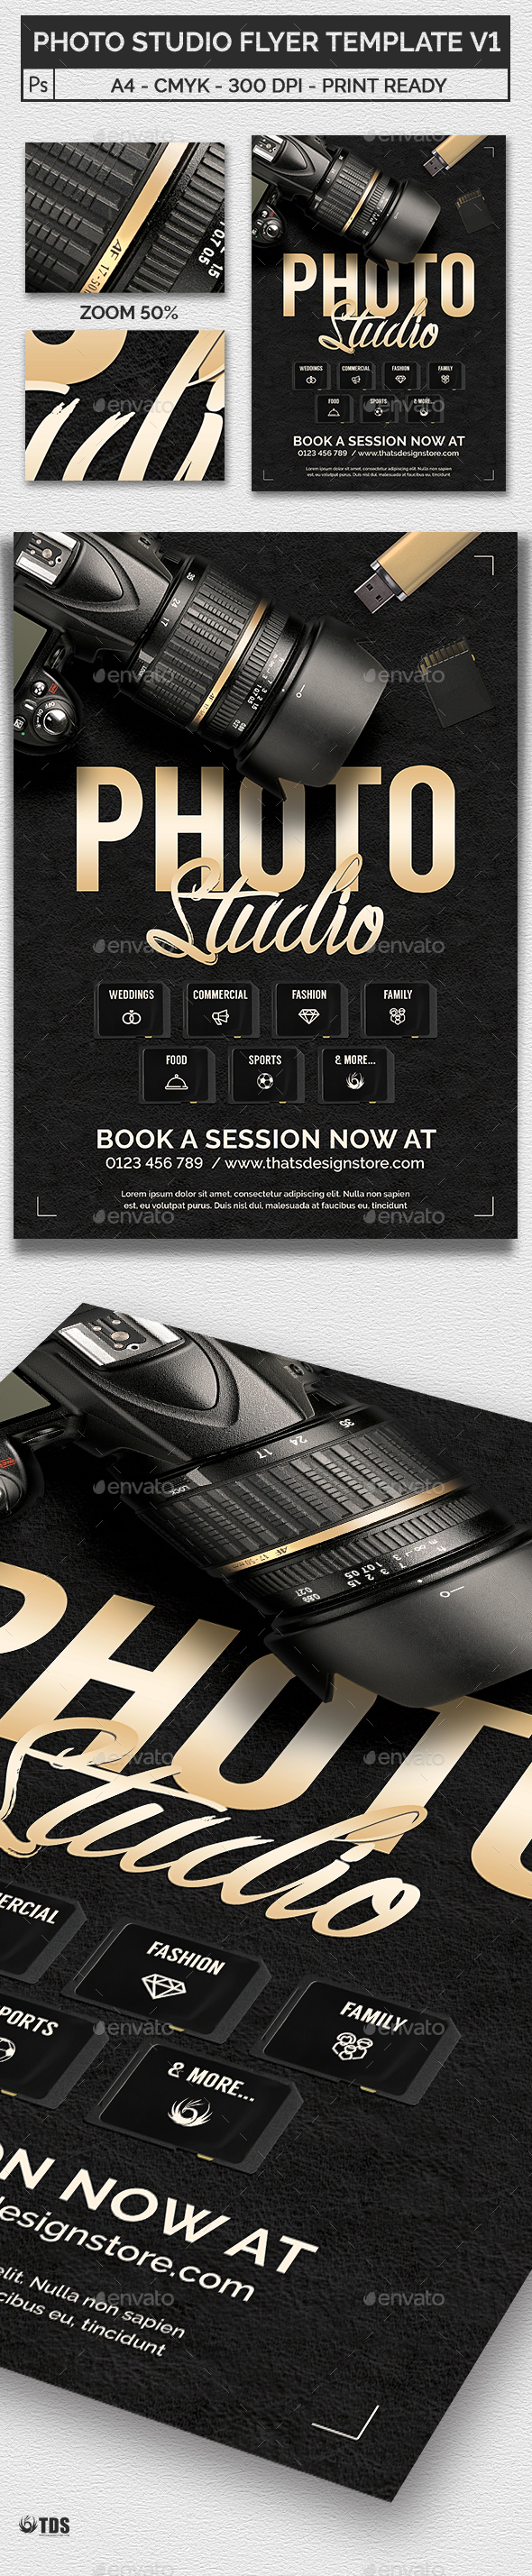 Photo Studio Flyer Template V1 - Corporate Flyers